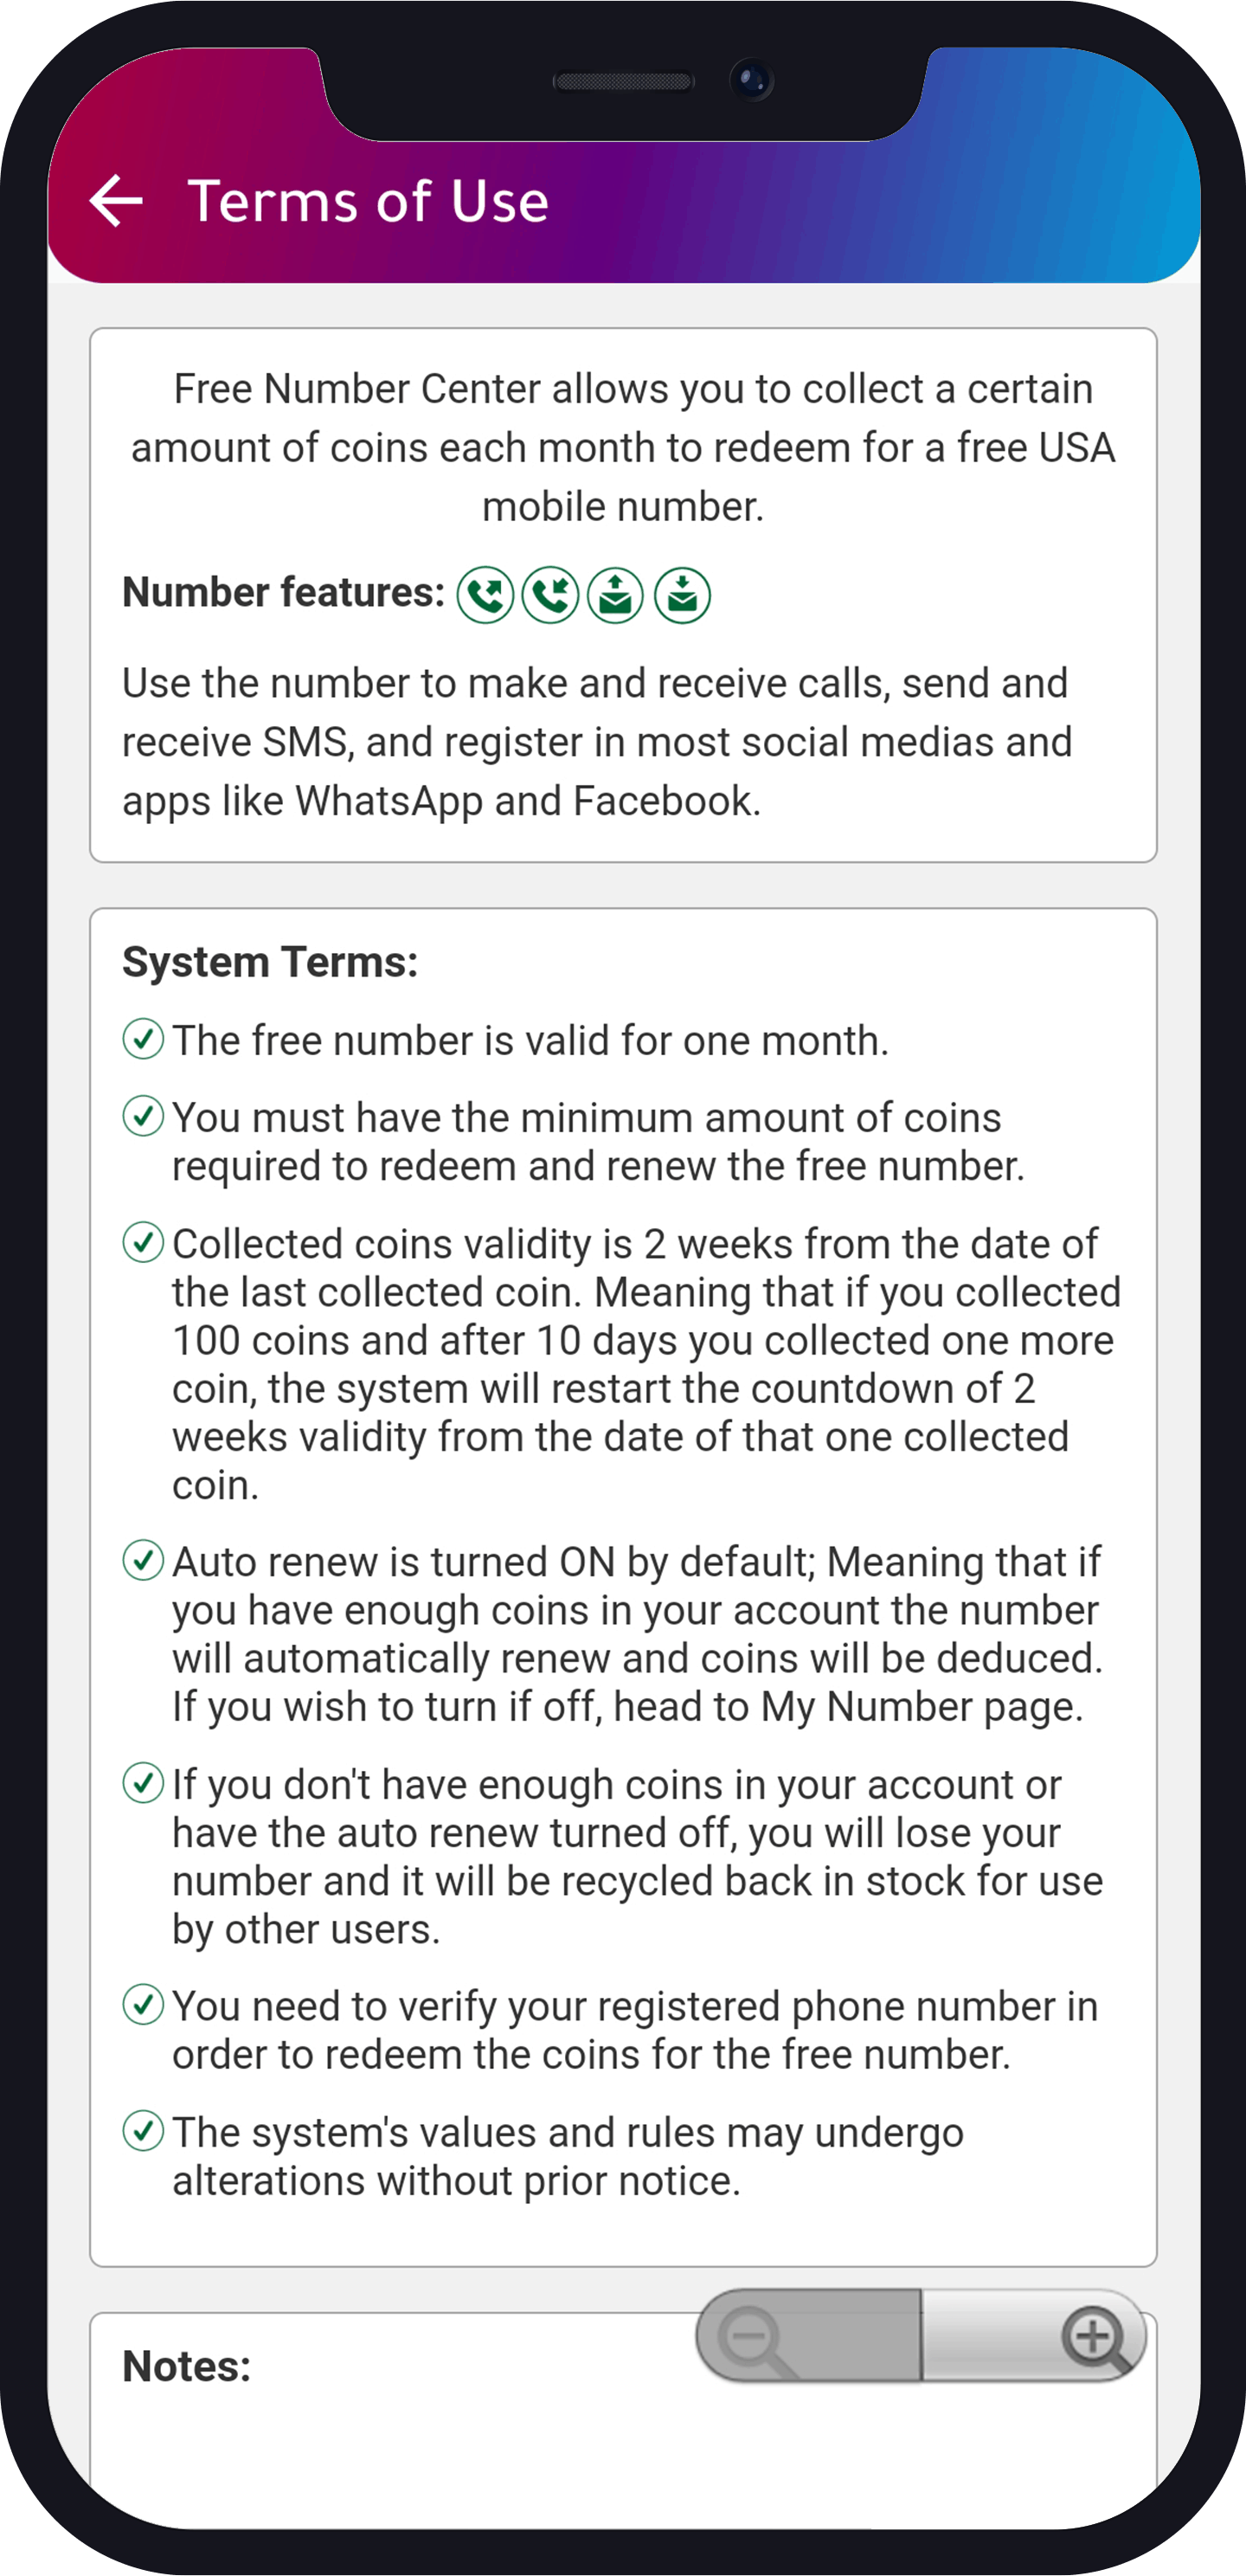 Coins center terms of use